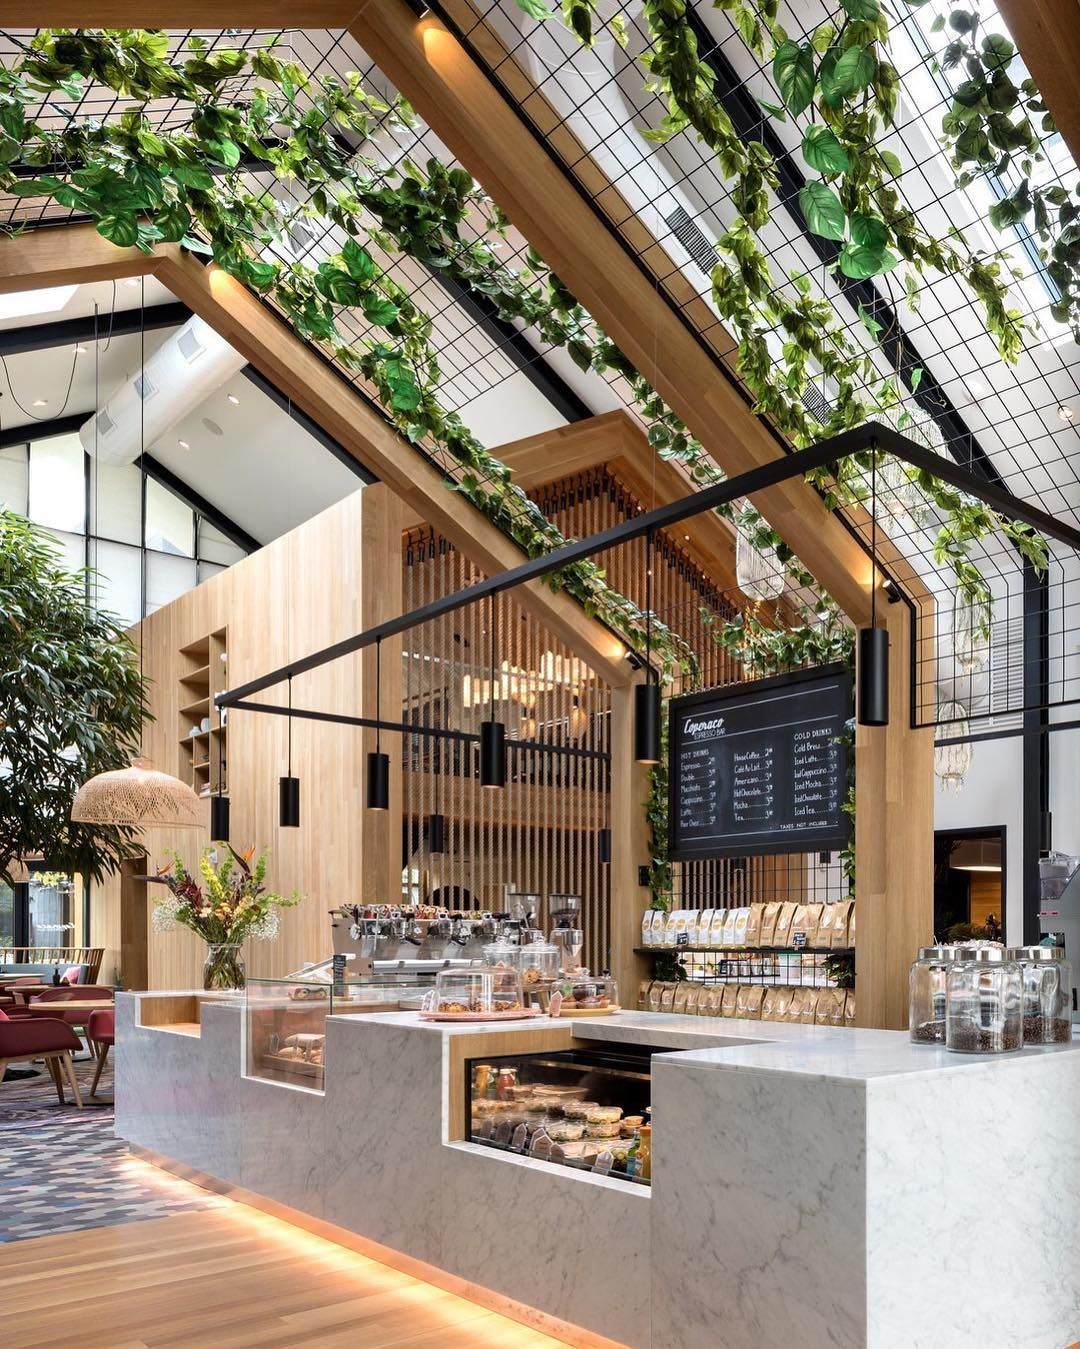 Boutique coffee roaster Coperaco's first cafe holds a